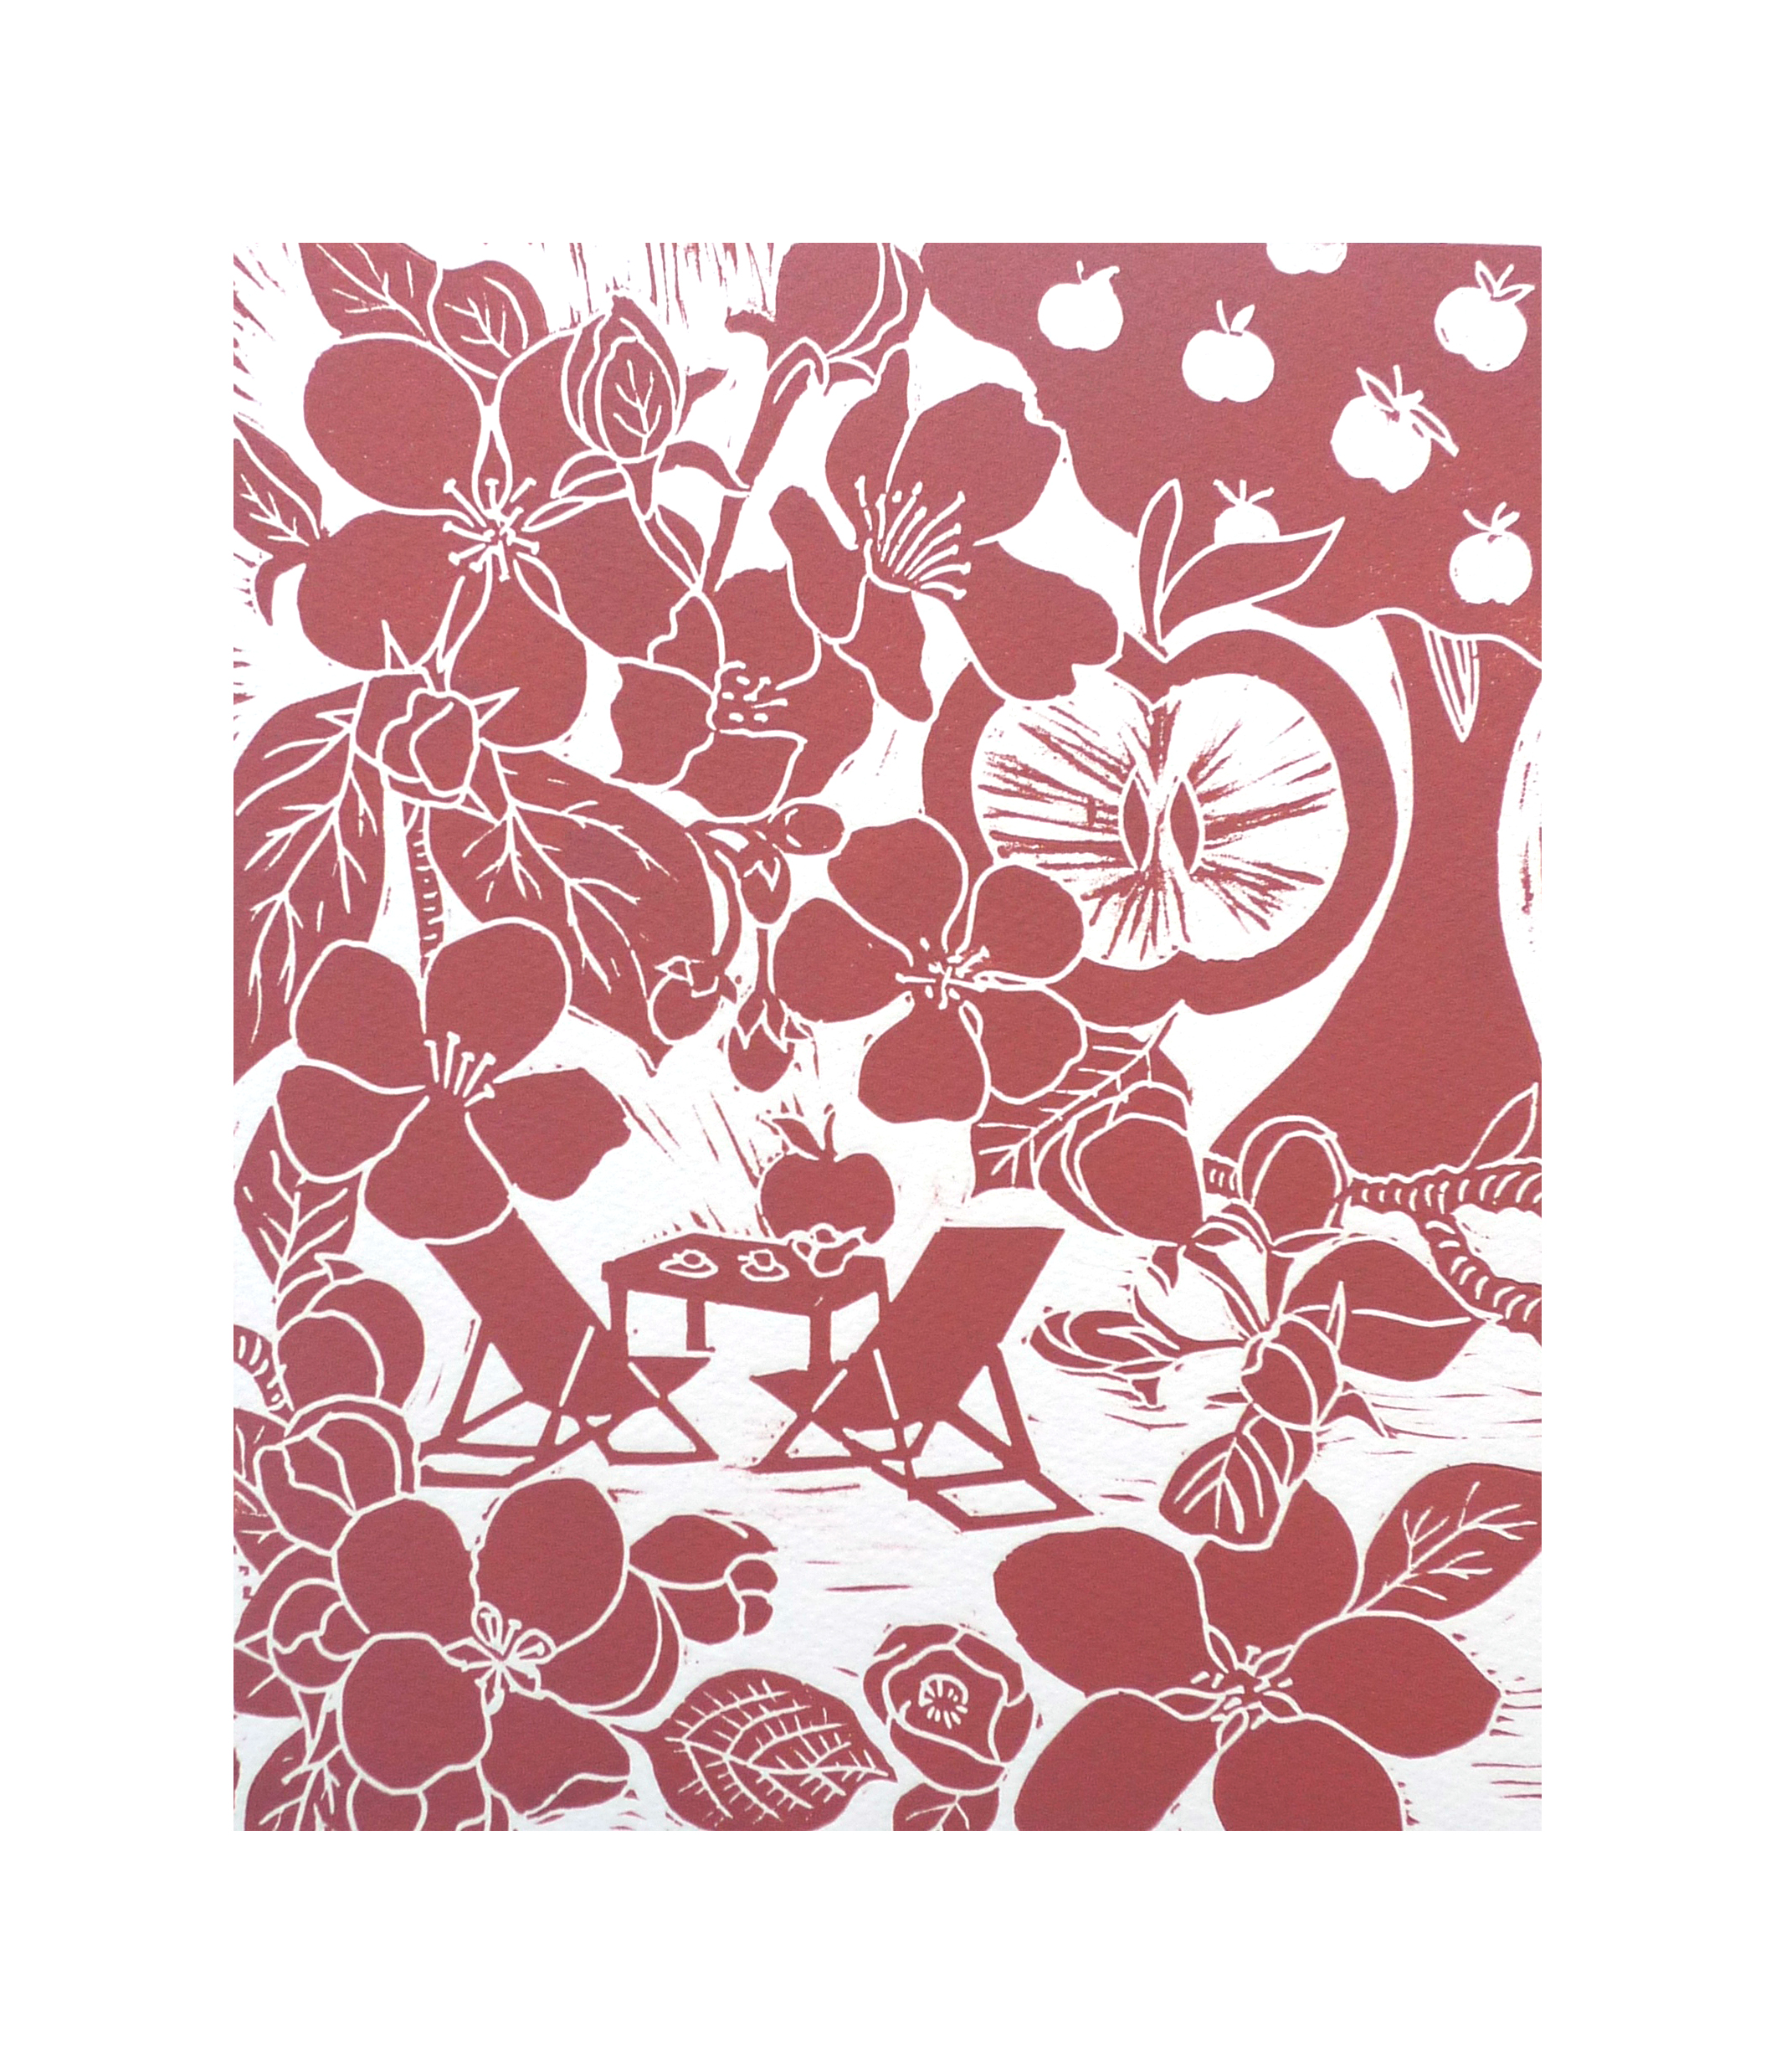 The Orchard at Granchester  Linocut   21 cm x 25.5 cm   £45